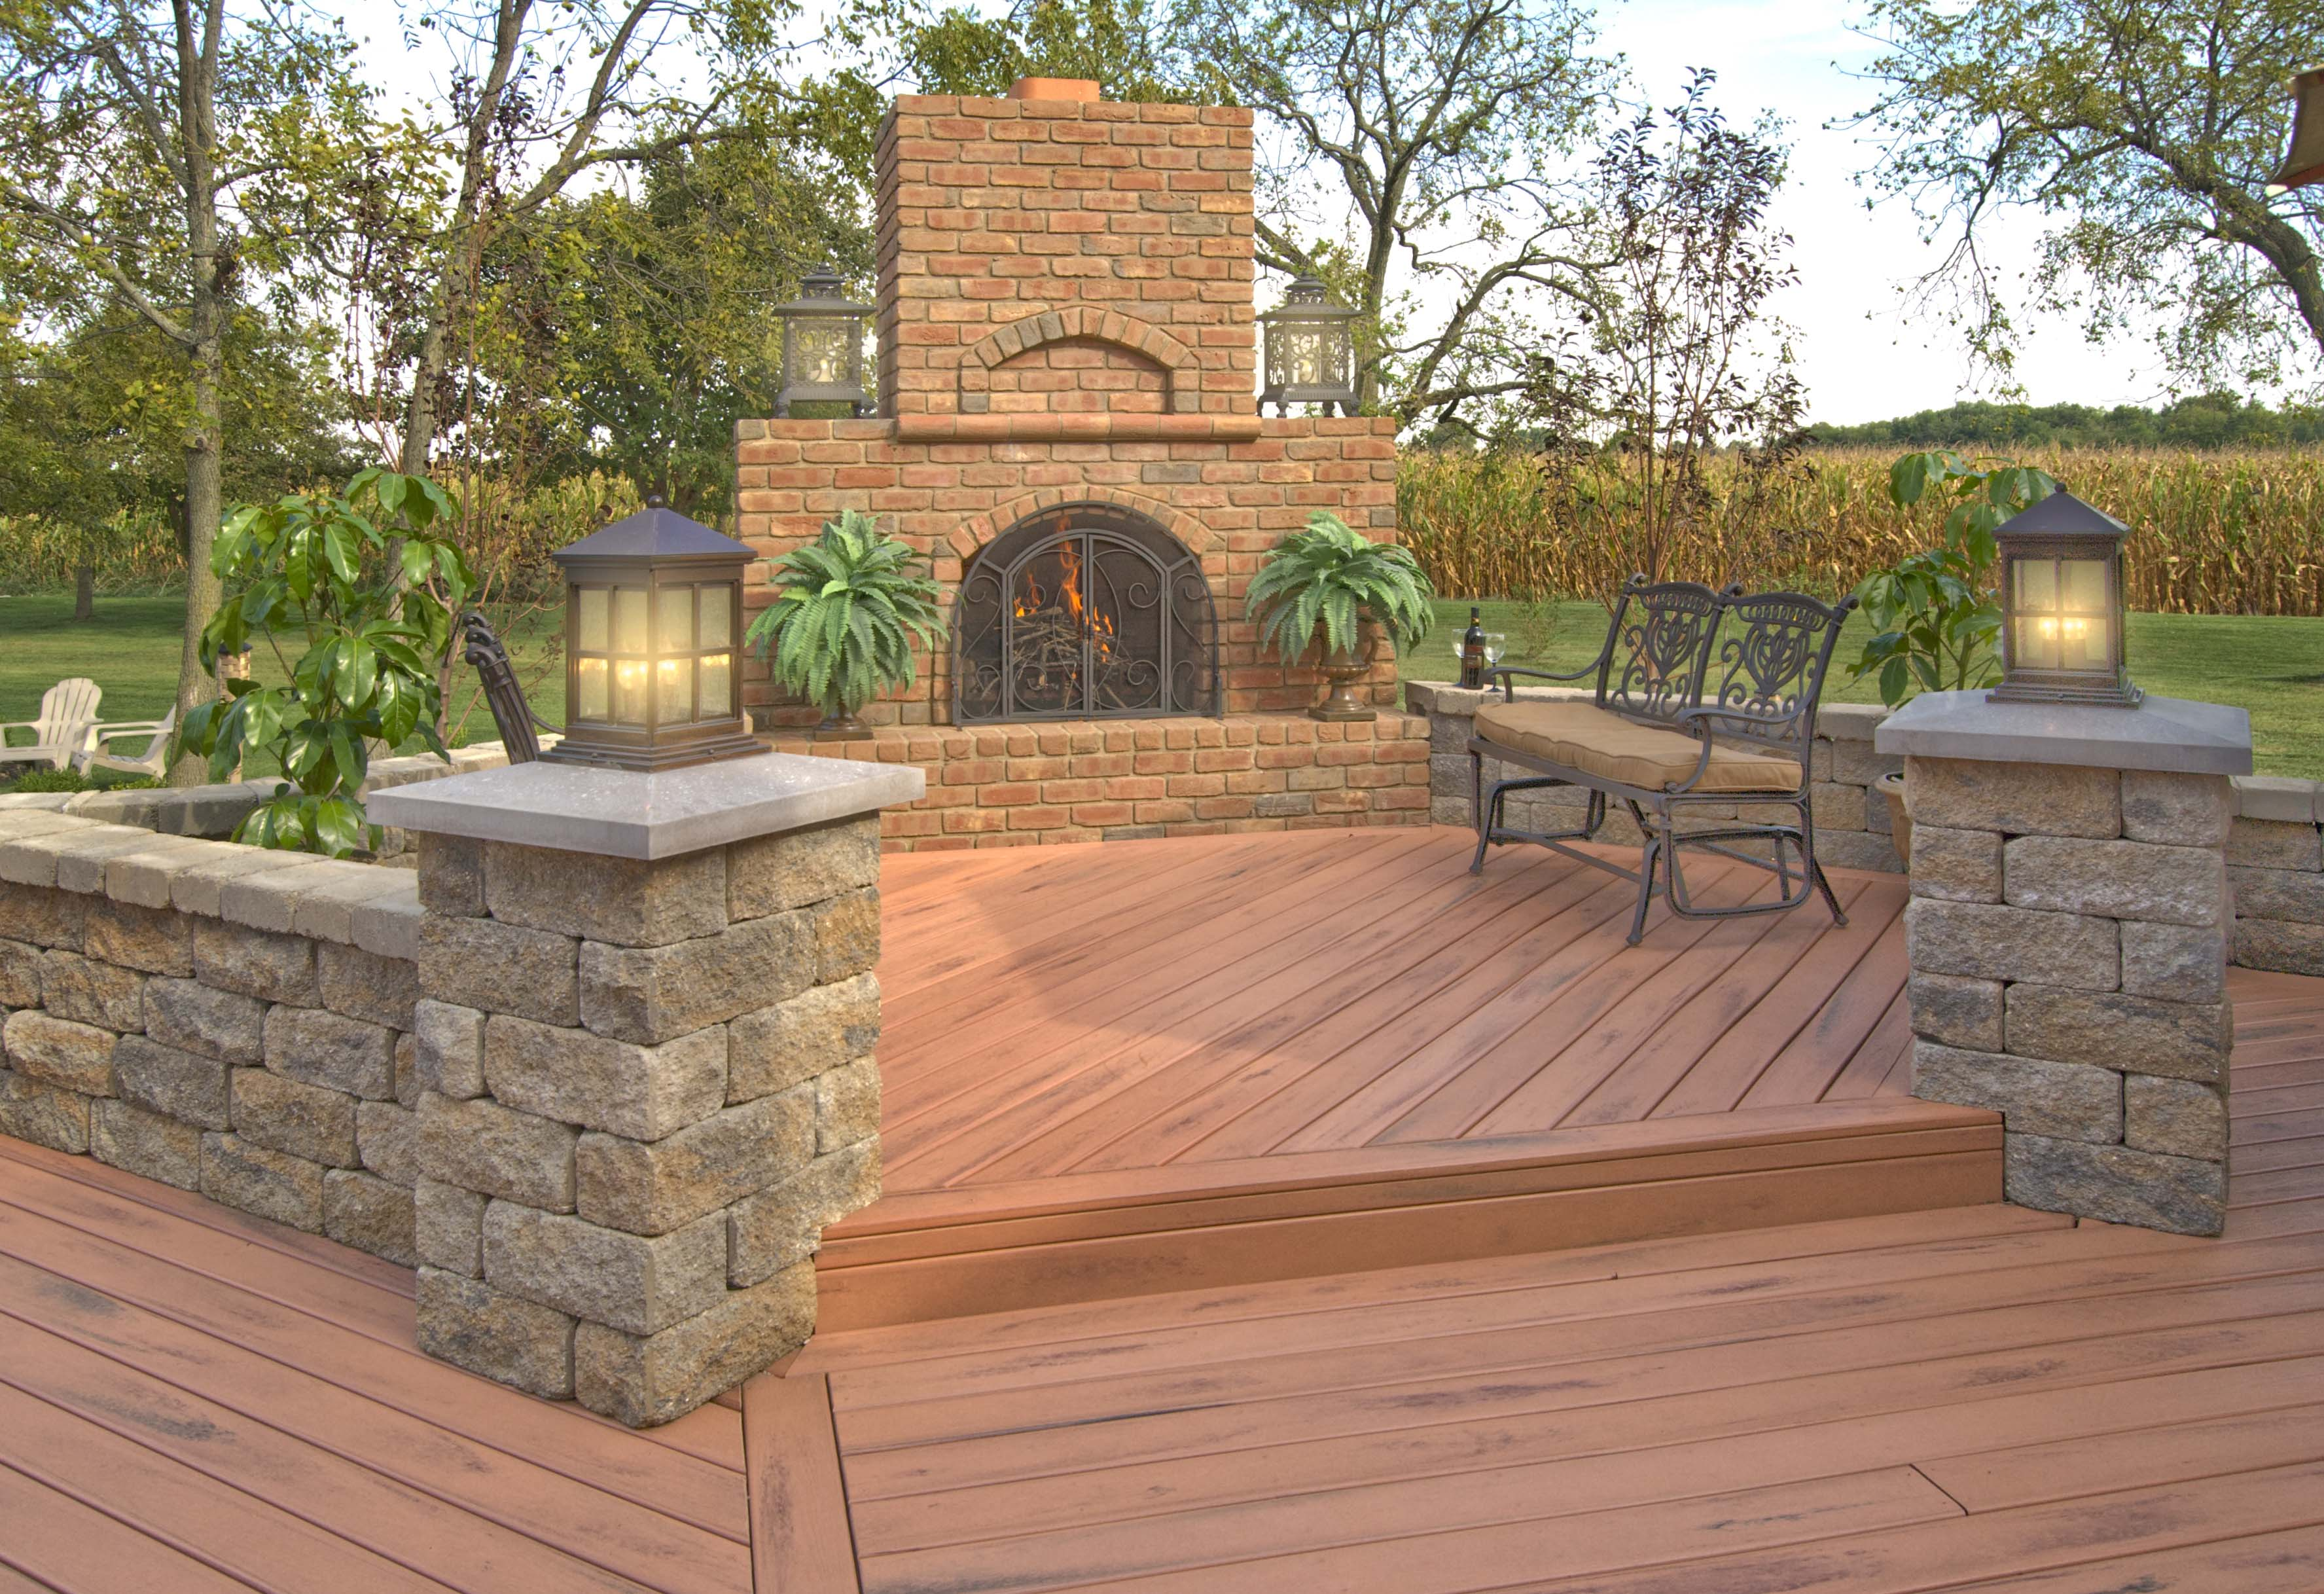 Superb Firepits And Outdoor Fireplaces Most In Demand Outdoor Living Feature